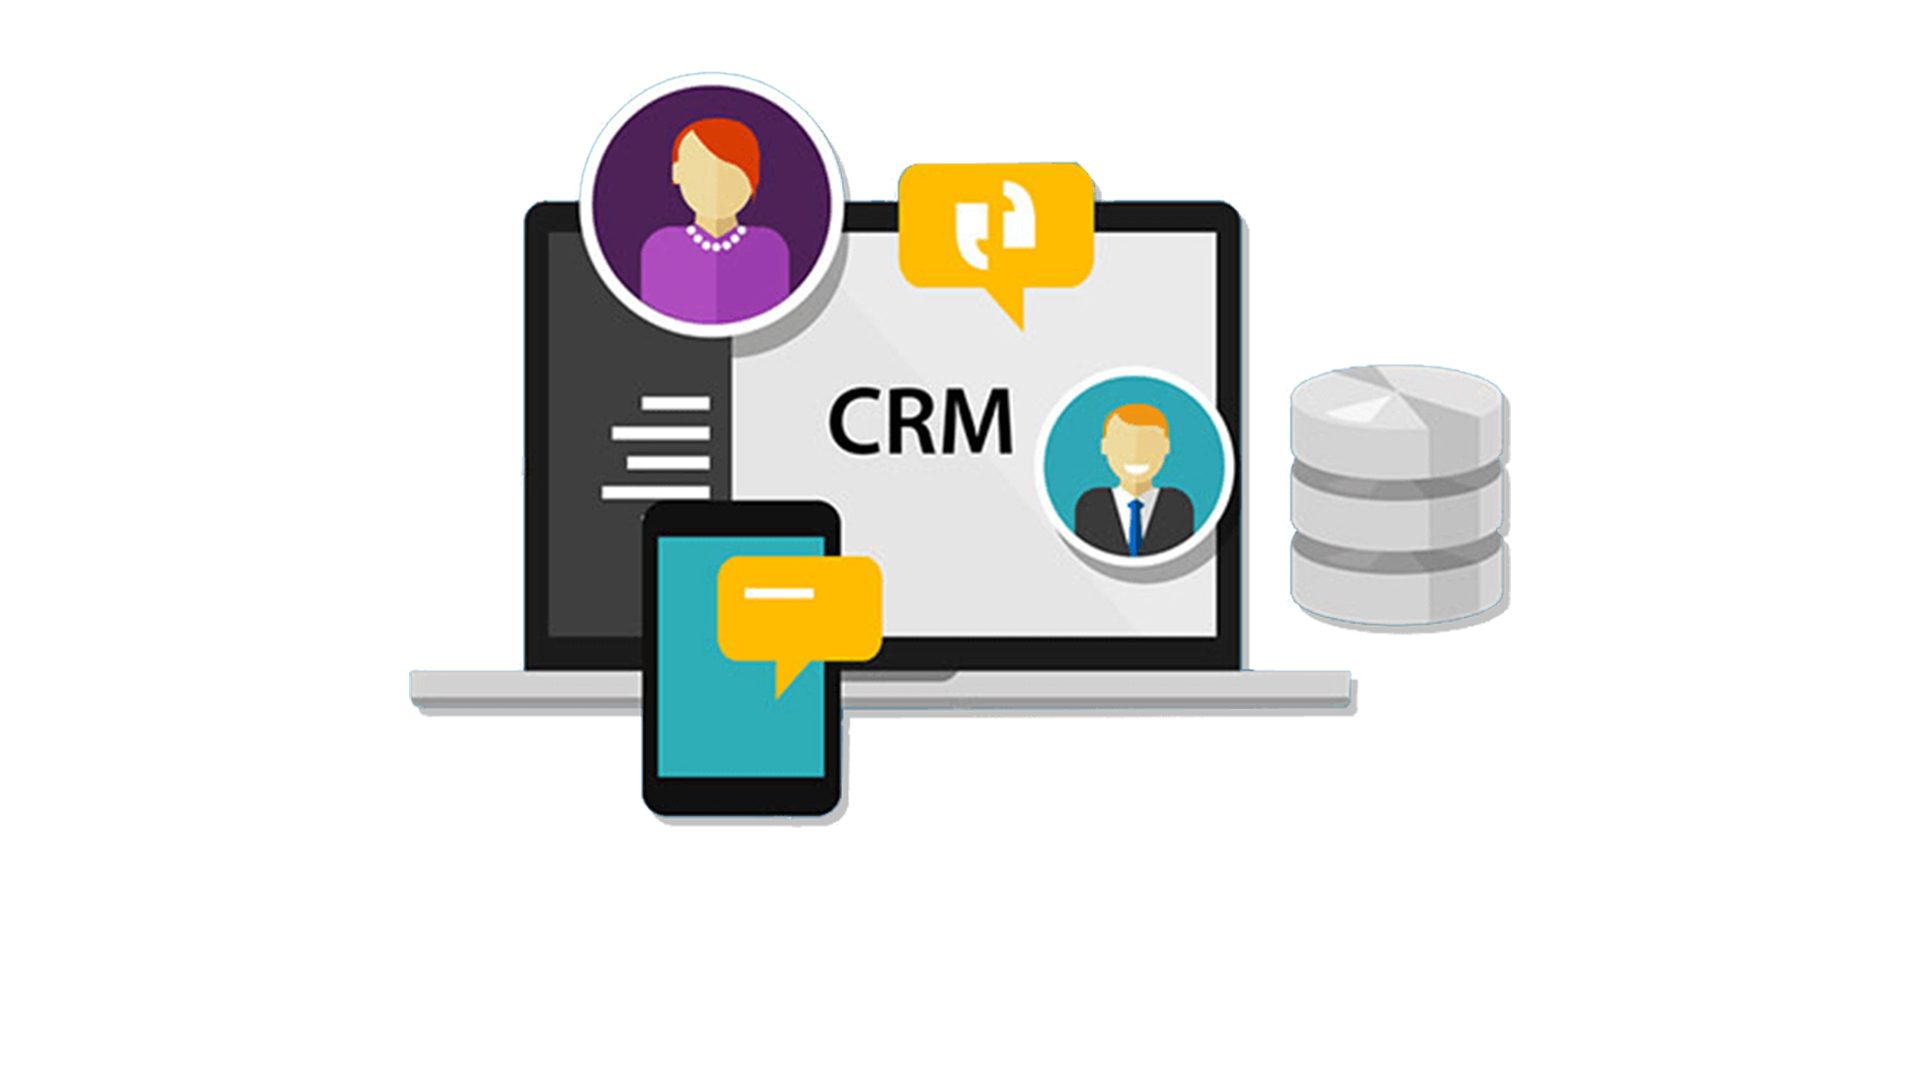 Combined crm and project management